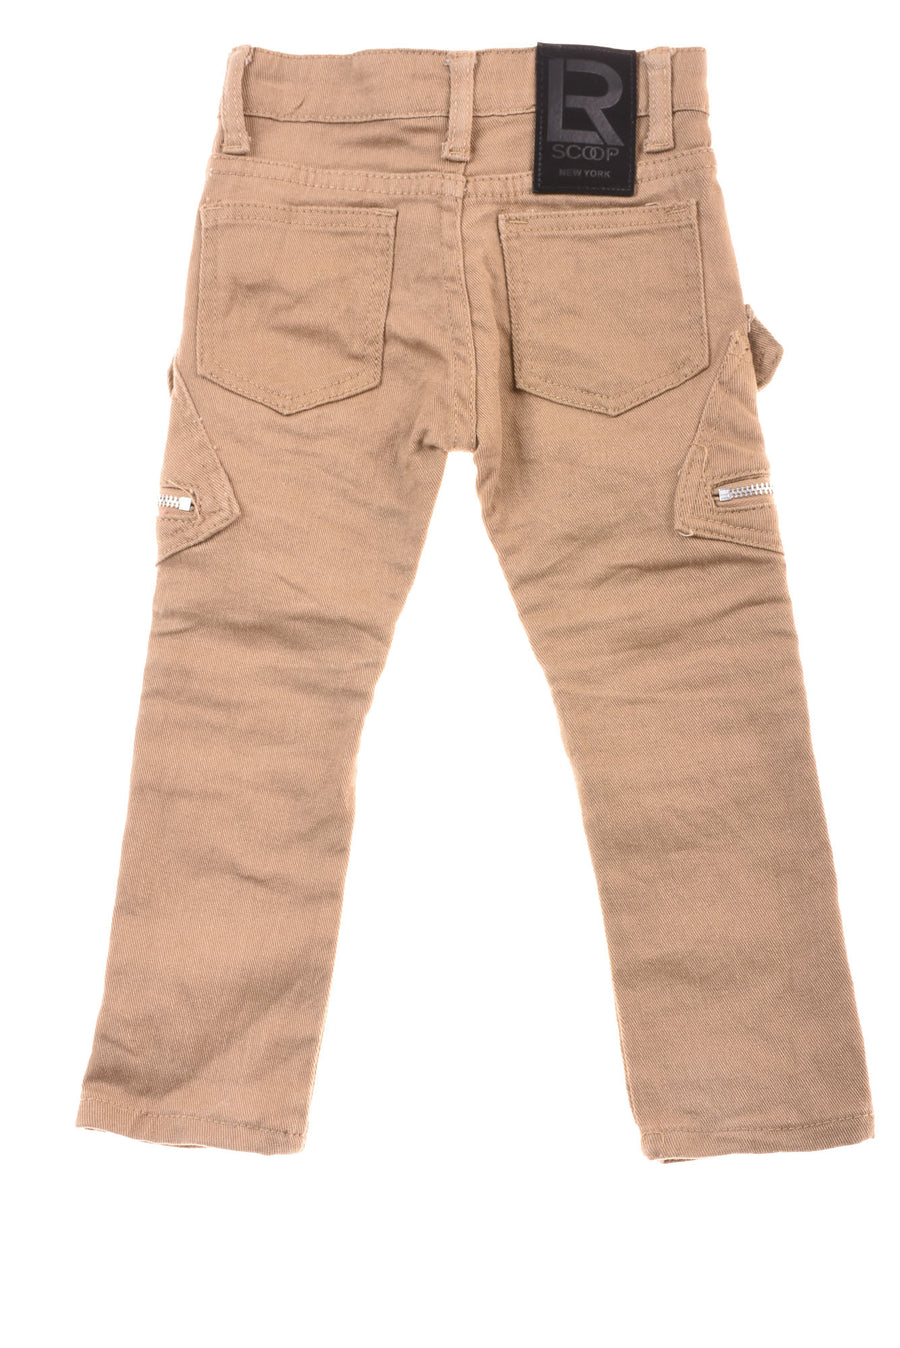 USED R Scoop New York Toddler Girl's Jeans 3T Camel